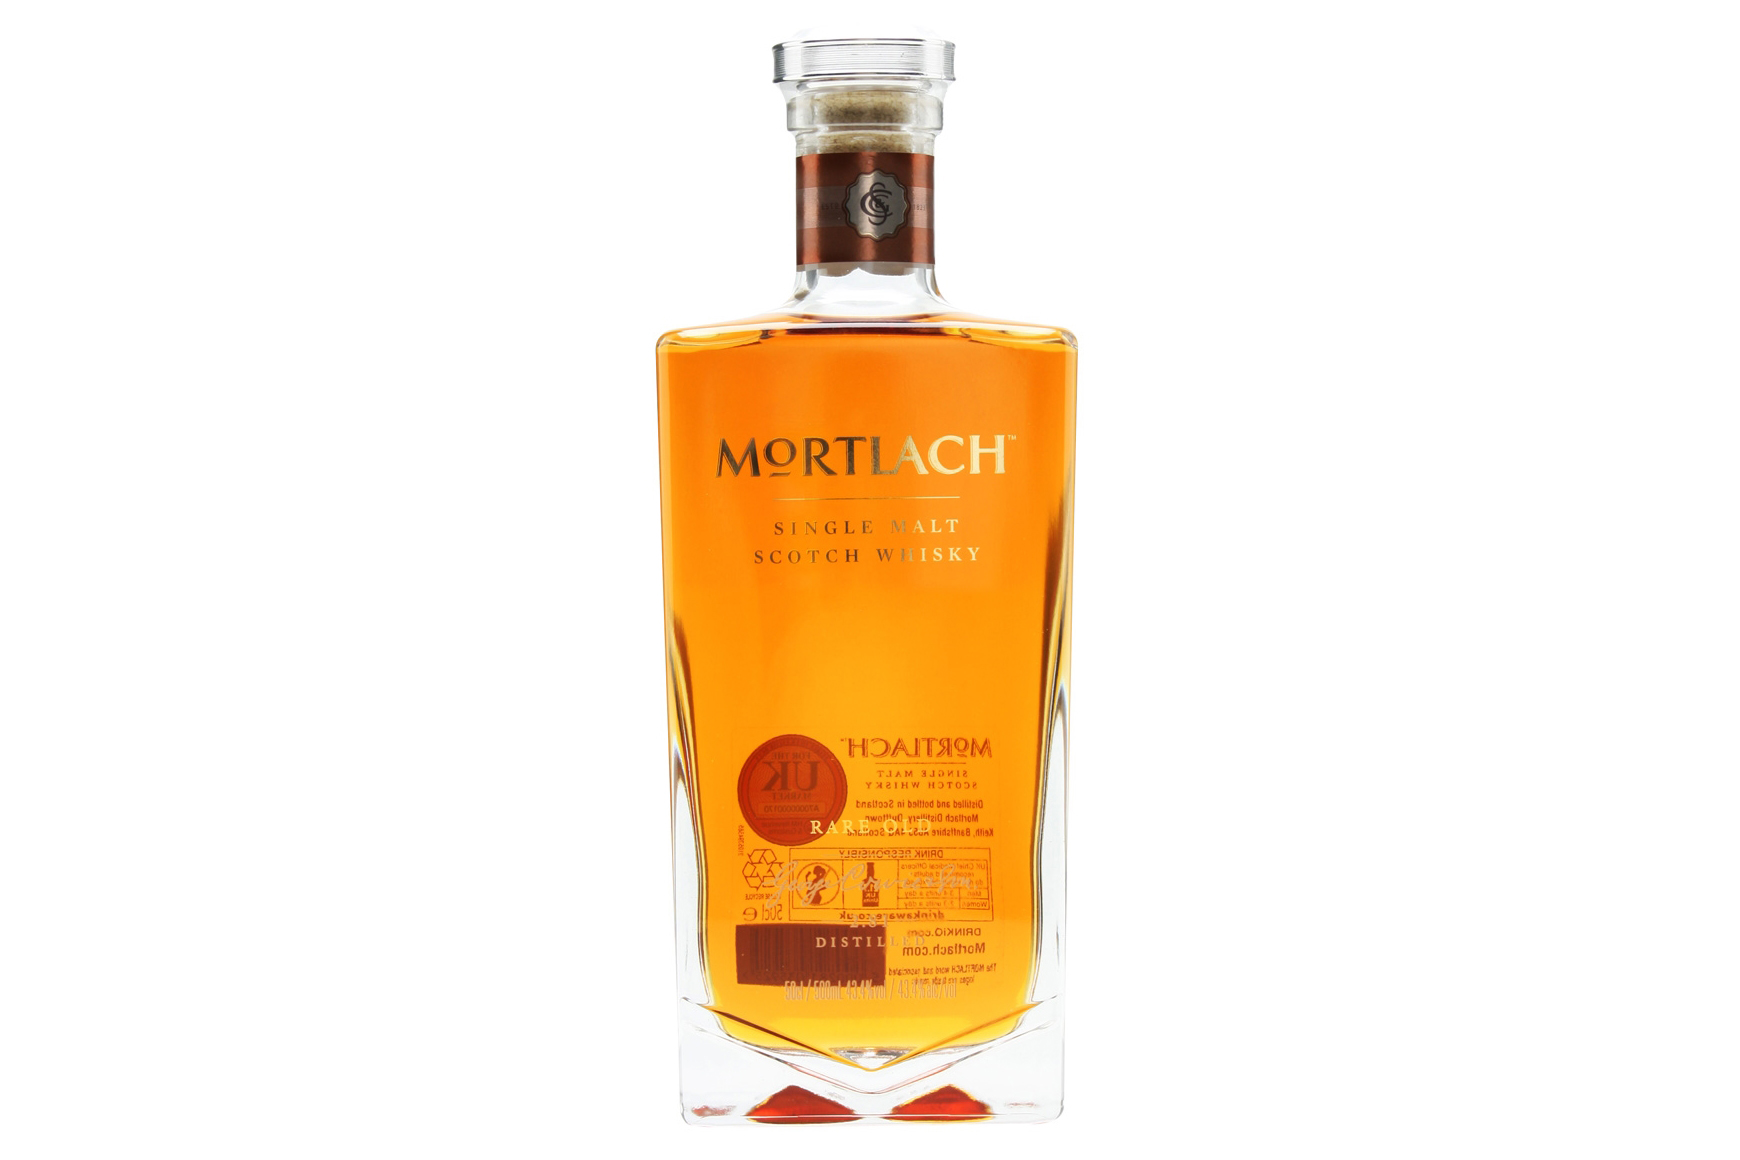 Mortlach Rare Old Single Malt Scotch Whiskey